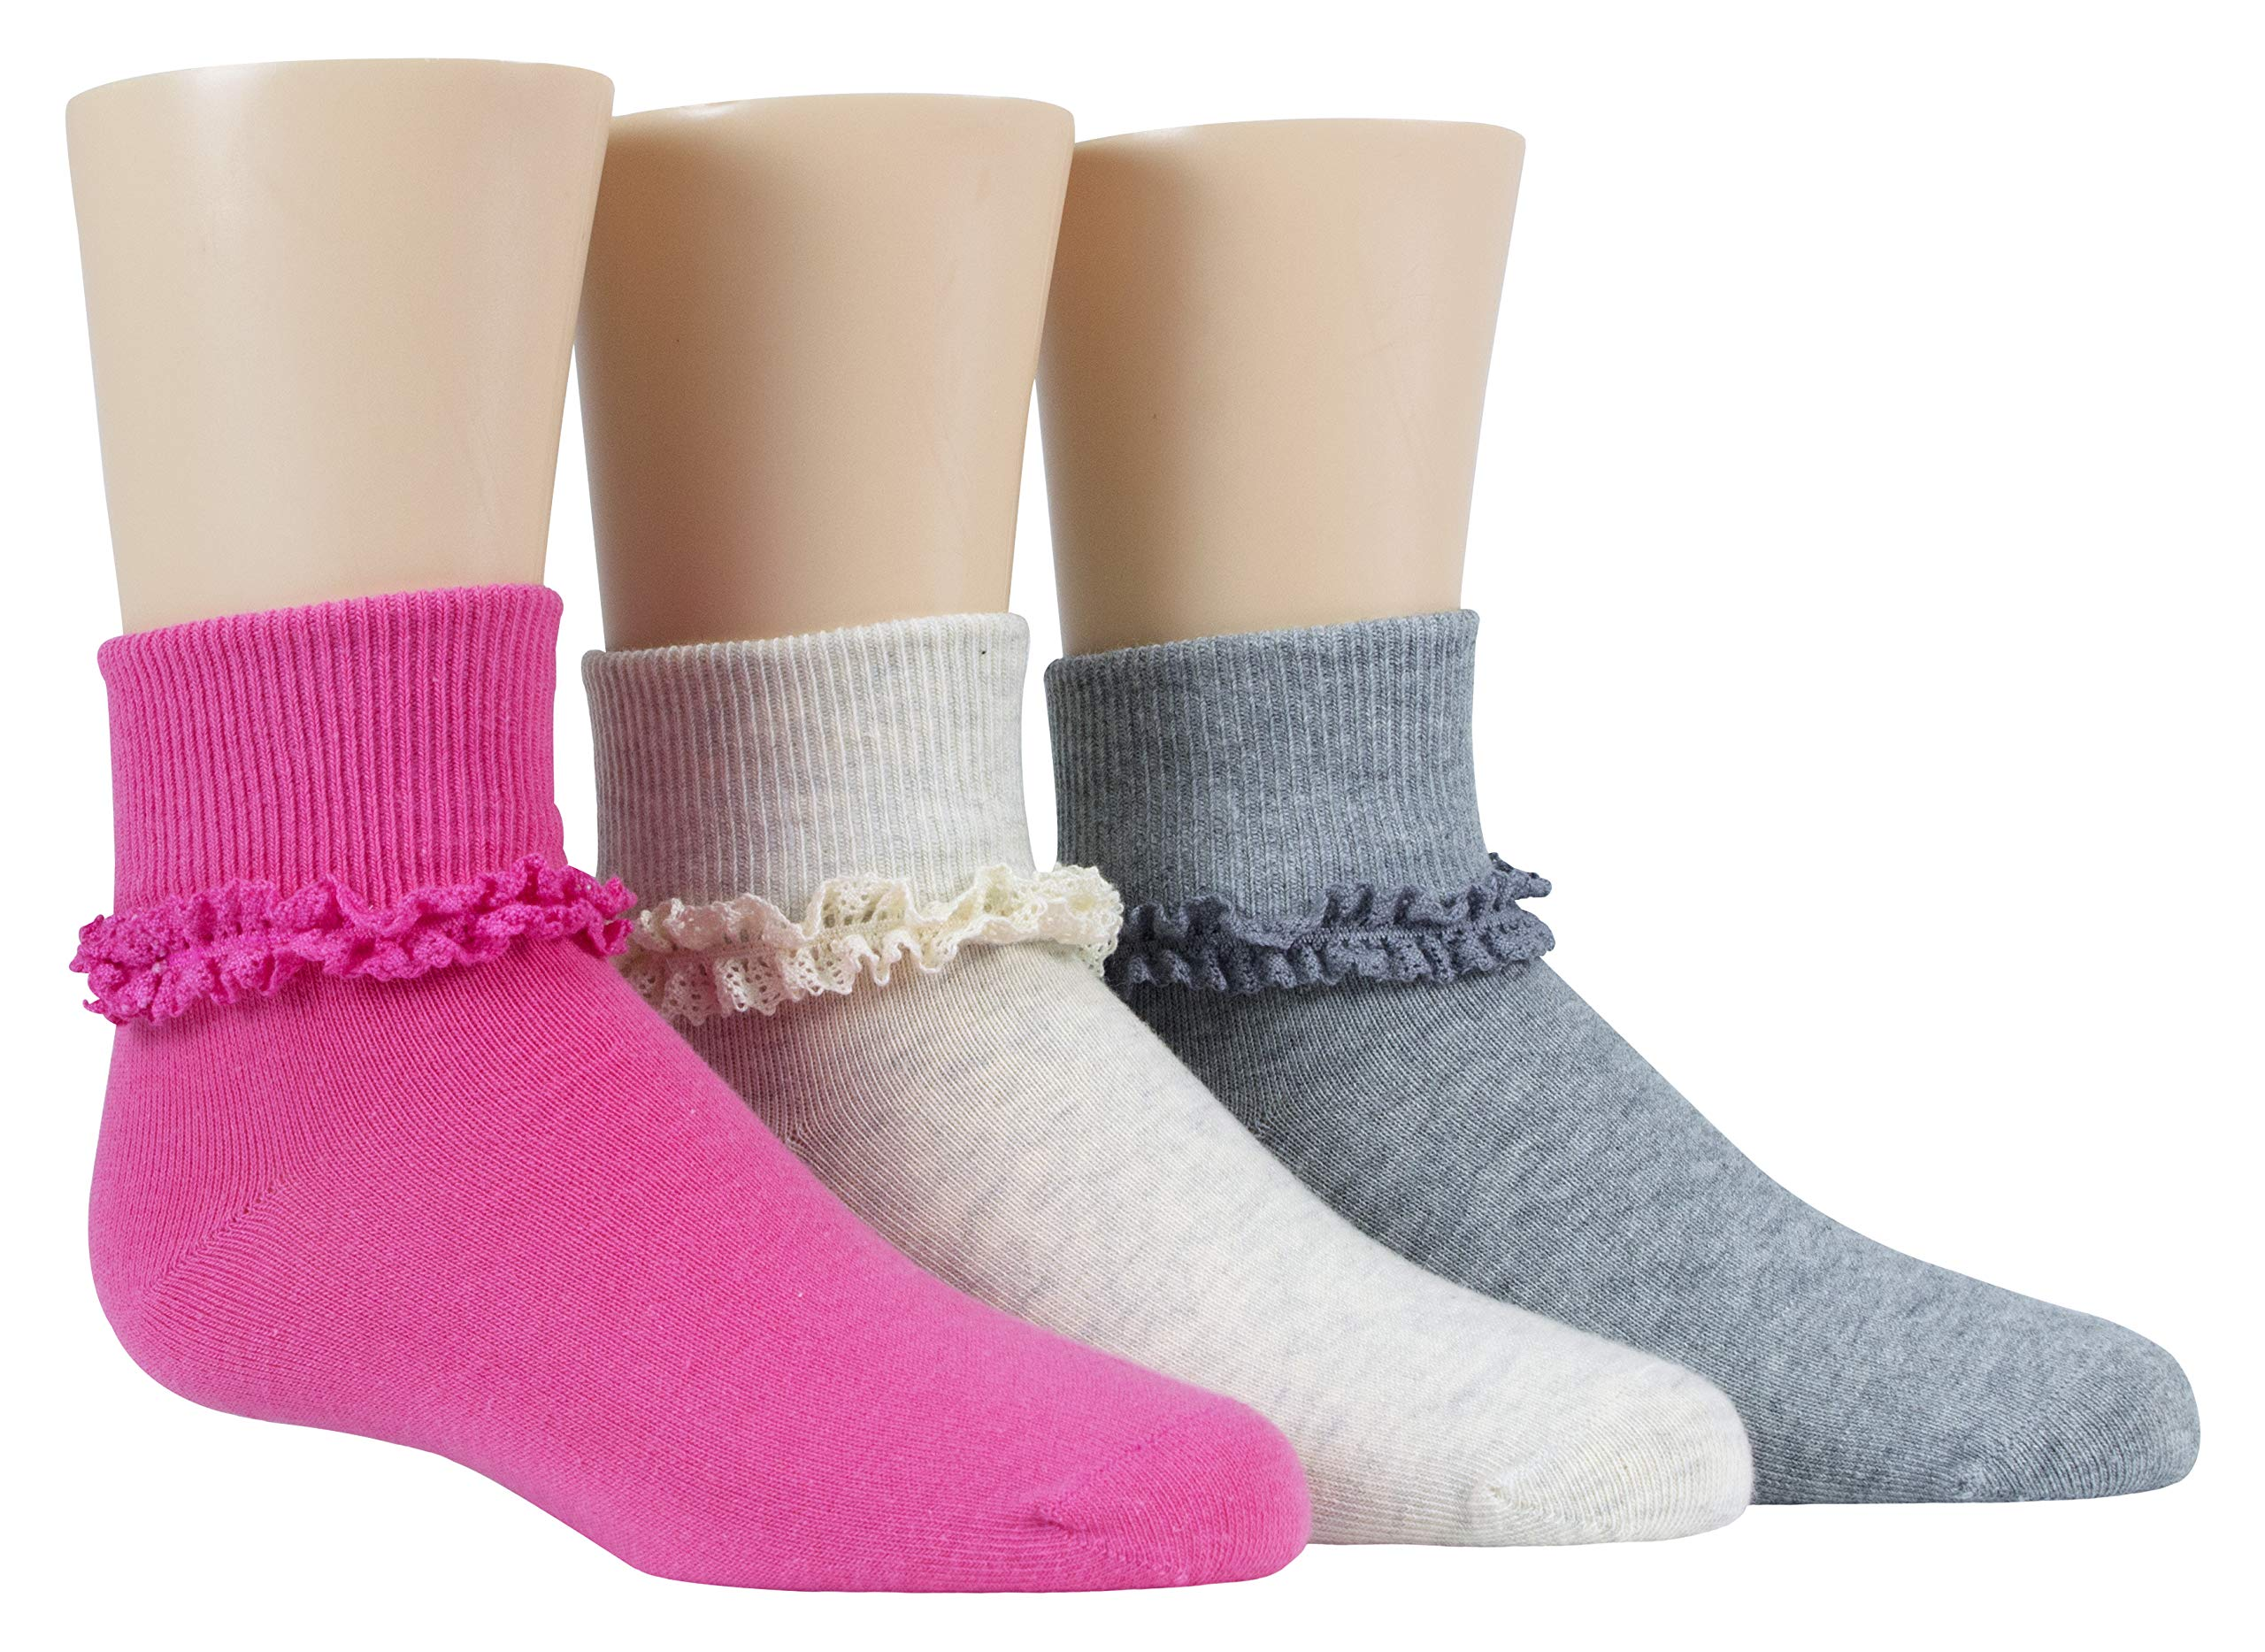 Stride Rite Little Girls' 3 Pack Turncuff, Donna-Grey/Pink/Oatmeal Lace, Sock: 7-8.5/Shoe: 10-13